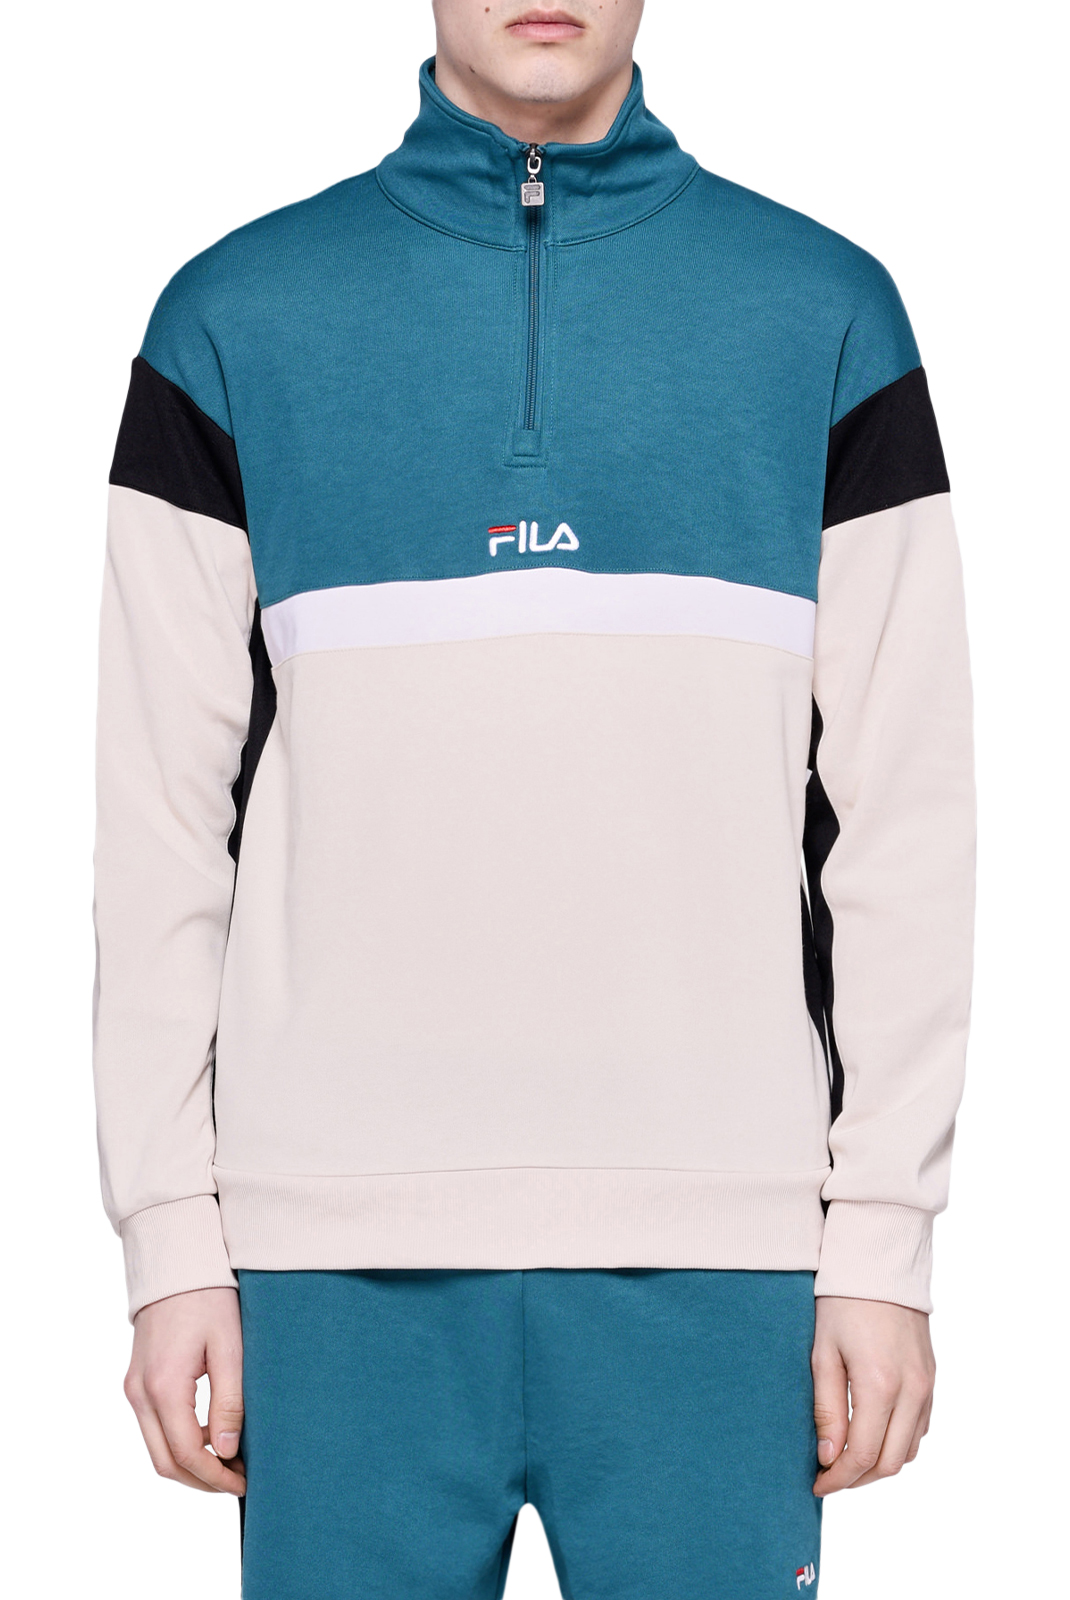 Pulls & Gilets  Fila 682356 HERRON A081 shaded spruce-black-whitecap gray